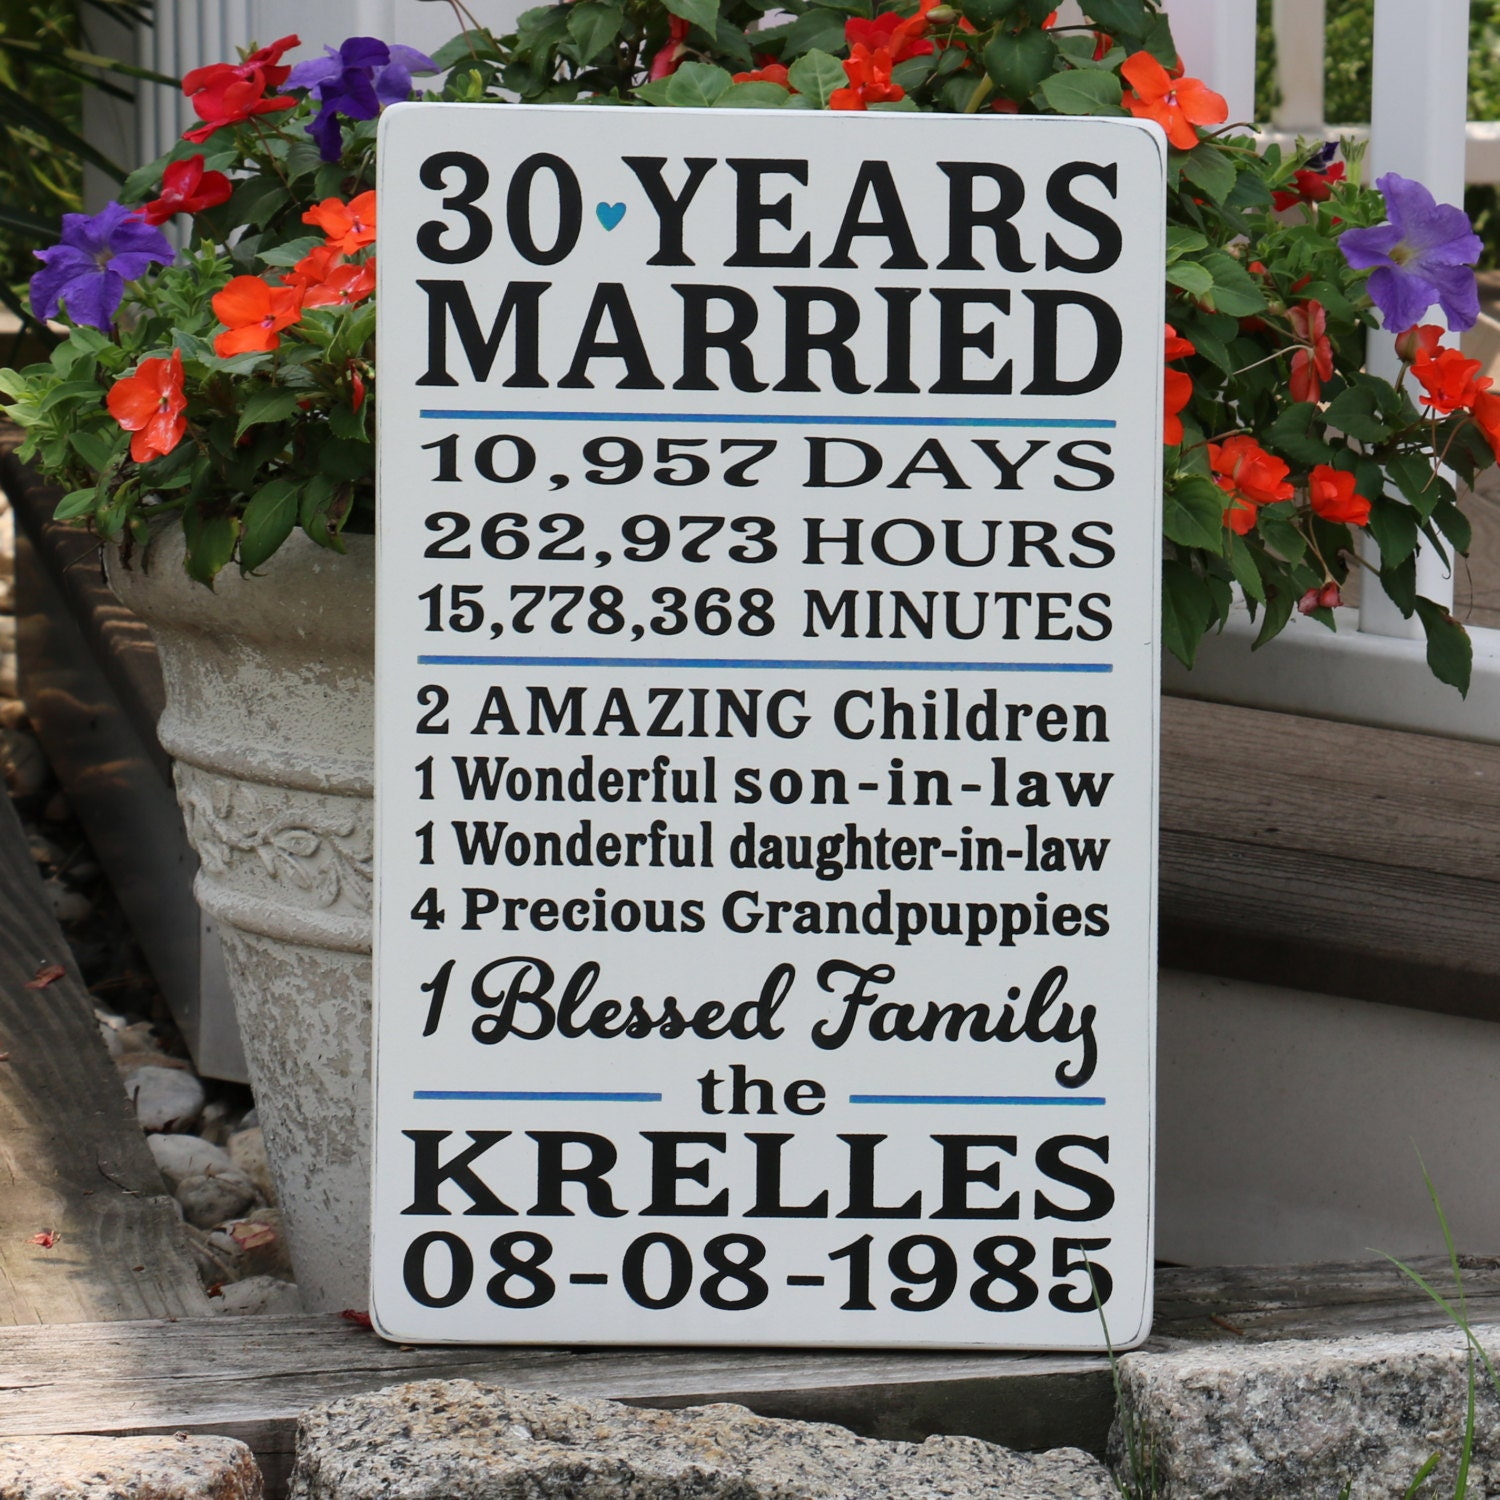 Wedding Anniversary Gifts 30 Years: Customized 30 Year Anniversary Sign With Wedding Date